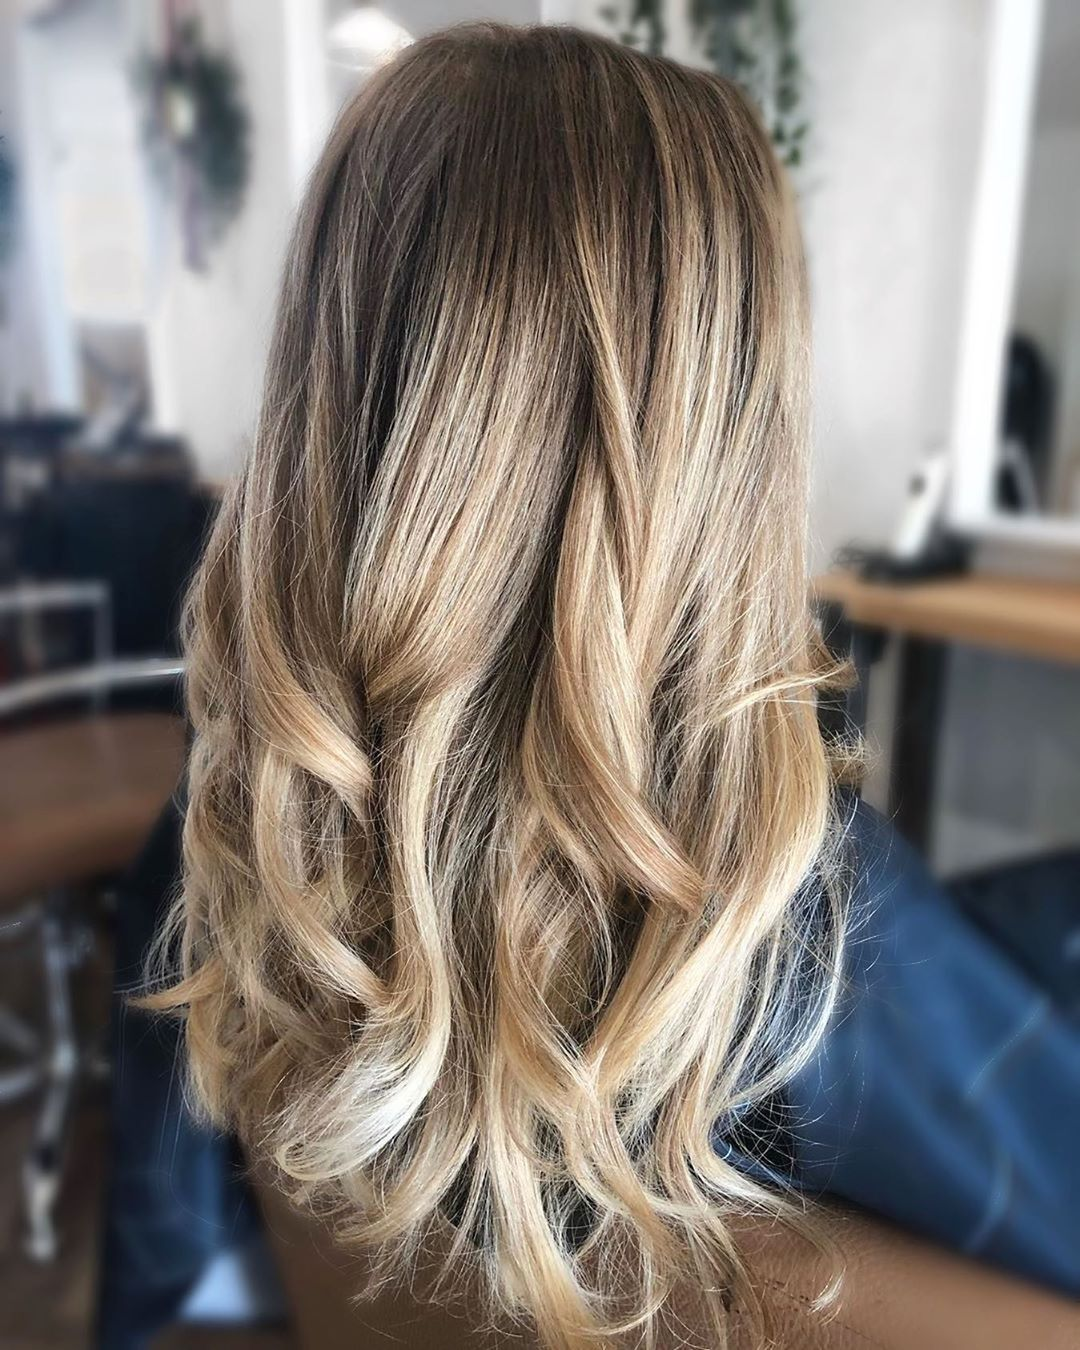 Posted By Kathymcleanhair Orla Orla Shiels Came In To Moxie Last Week For A Summer Haircut I Was So Pleased T Healthy Blonde Hair Summer Haircuts Balayage